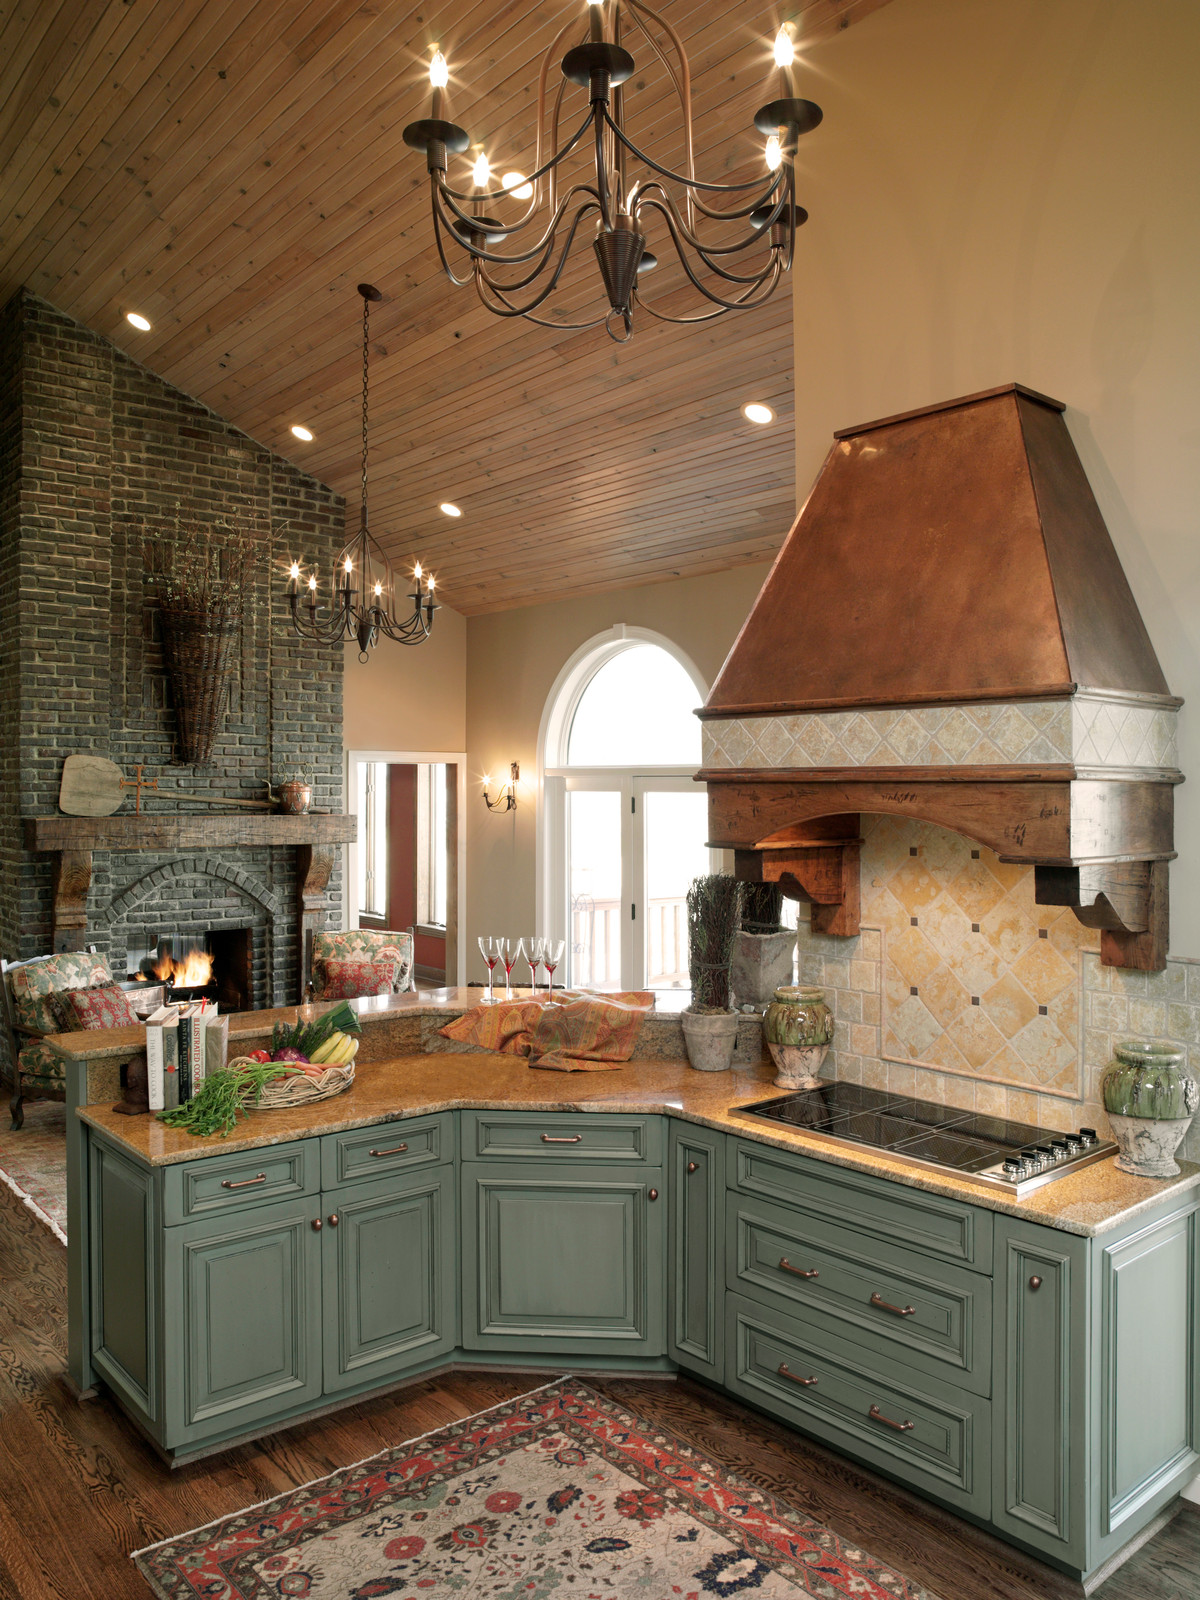 French Country | Unorthobox Wood Designs - Bespoke Cabinetry